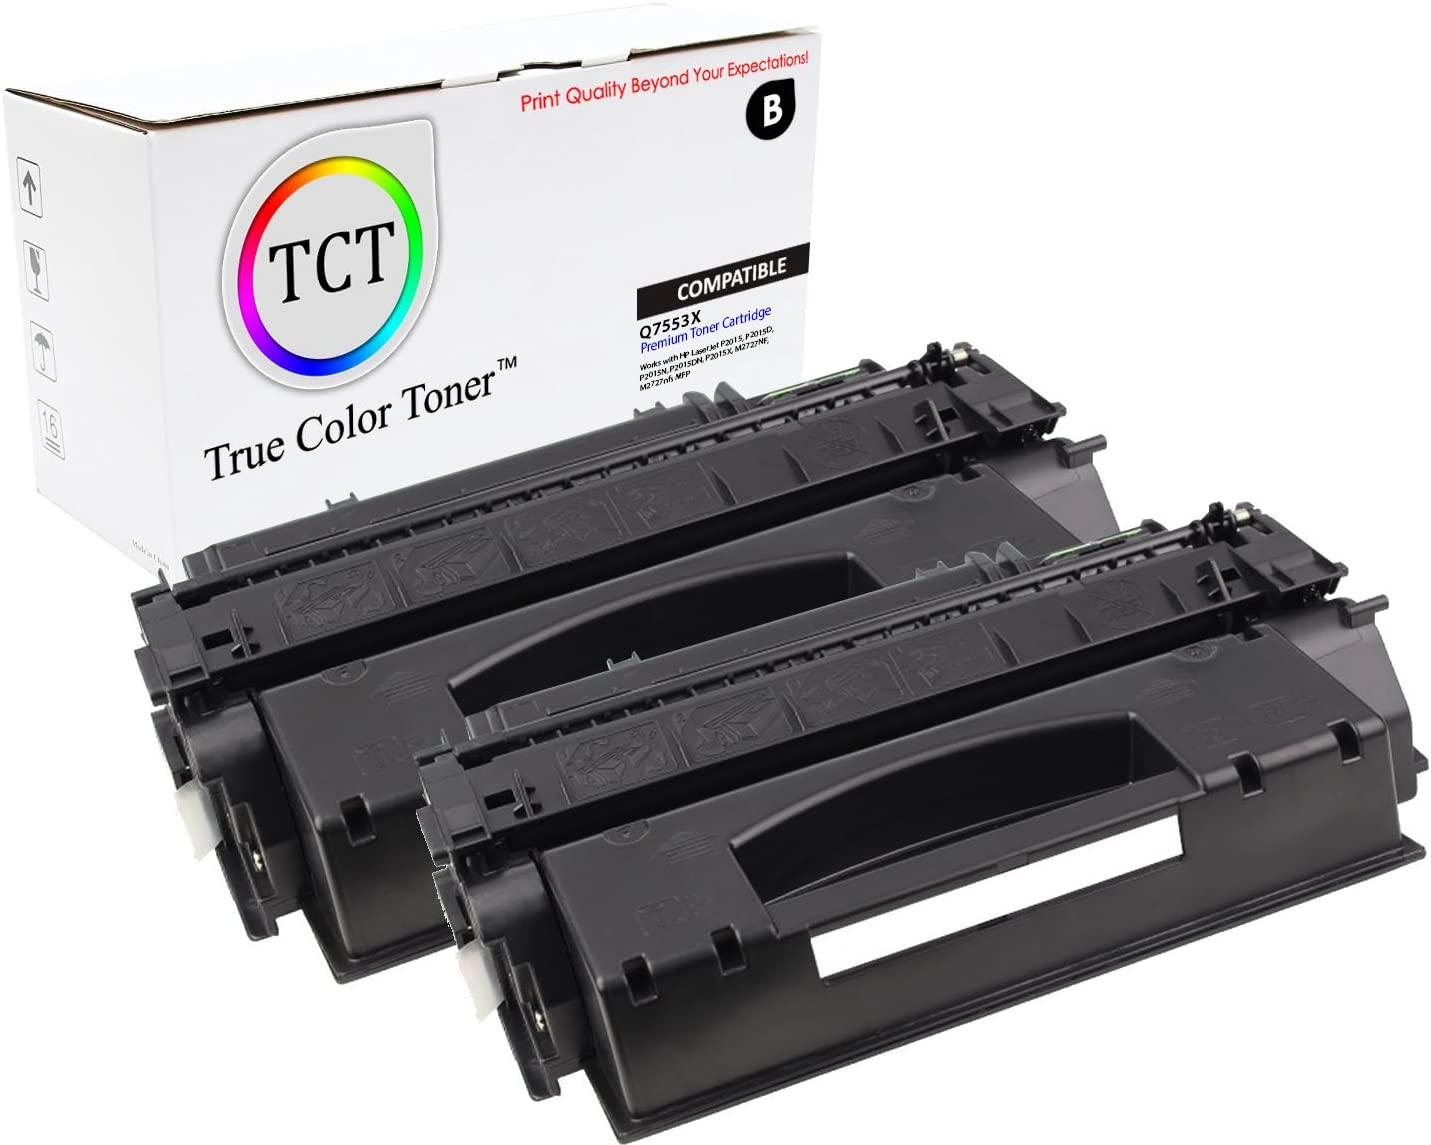 2PK Q7553X 53X Black Toner Cartridge For HP LaserJet M2727NF M2727NFS MFP P2015